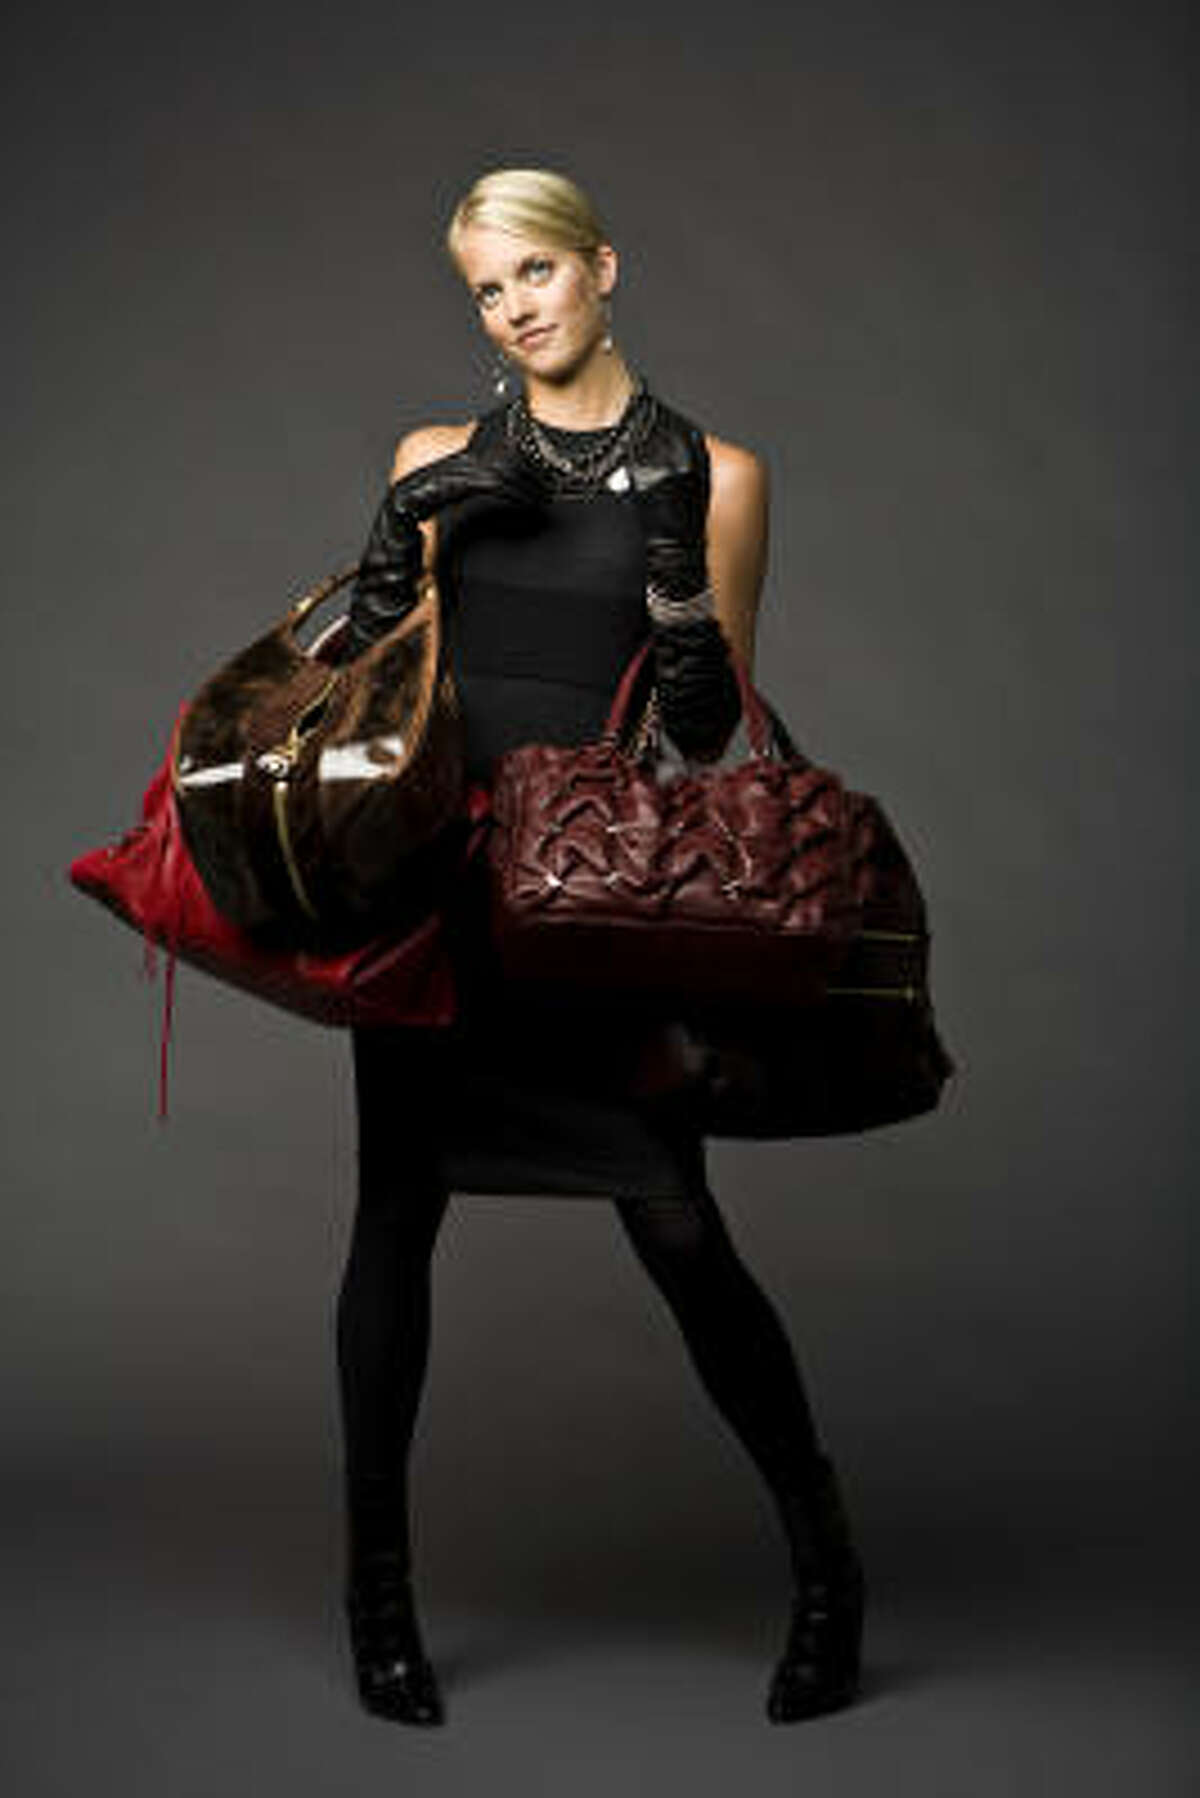 From left: Balenciaga's red carry-all, $1,595, Neiman Marcus; Jimmy Choo's Middle Zip hobo, $1,450, Saks Fifth Avenue; Ferragamo's red leather tote with metal vara buckle details $1,890, similar styles at Ferragamo boutique; and Coach's Cambridge leather large hobo, $568, Coach. Vince dress, $295, and Manolo Blahnick black booties, $1,165, Neiman Marcus. Gloves are stylist's own. Earrings, necklace and bracelet, $29.50-$79.50, Banana Republic.